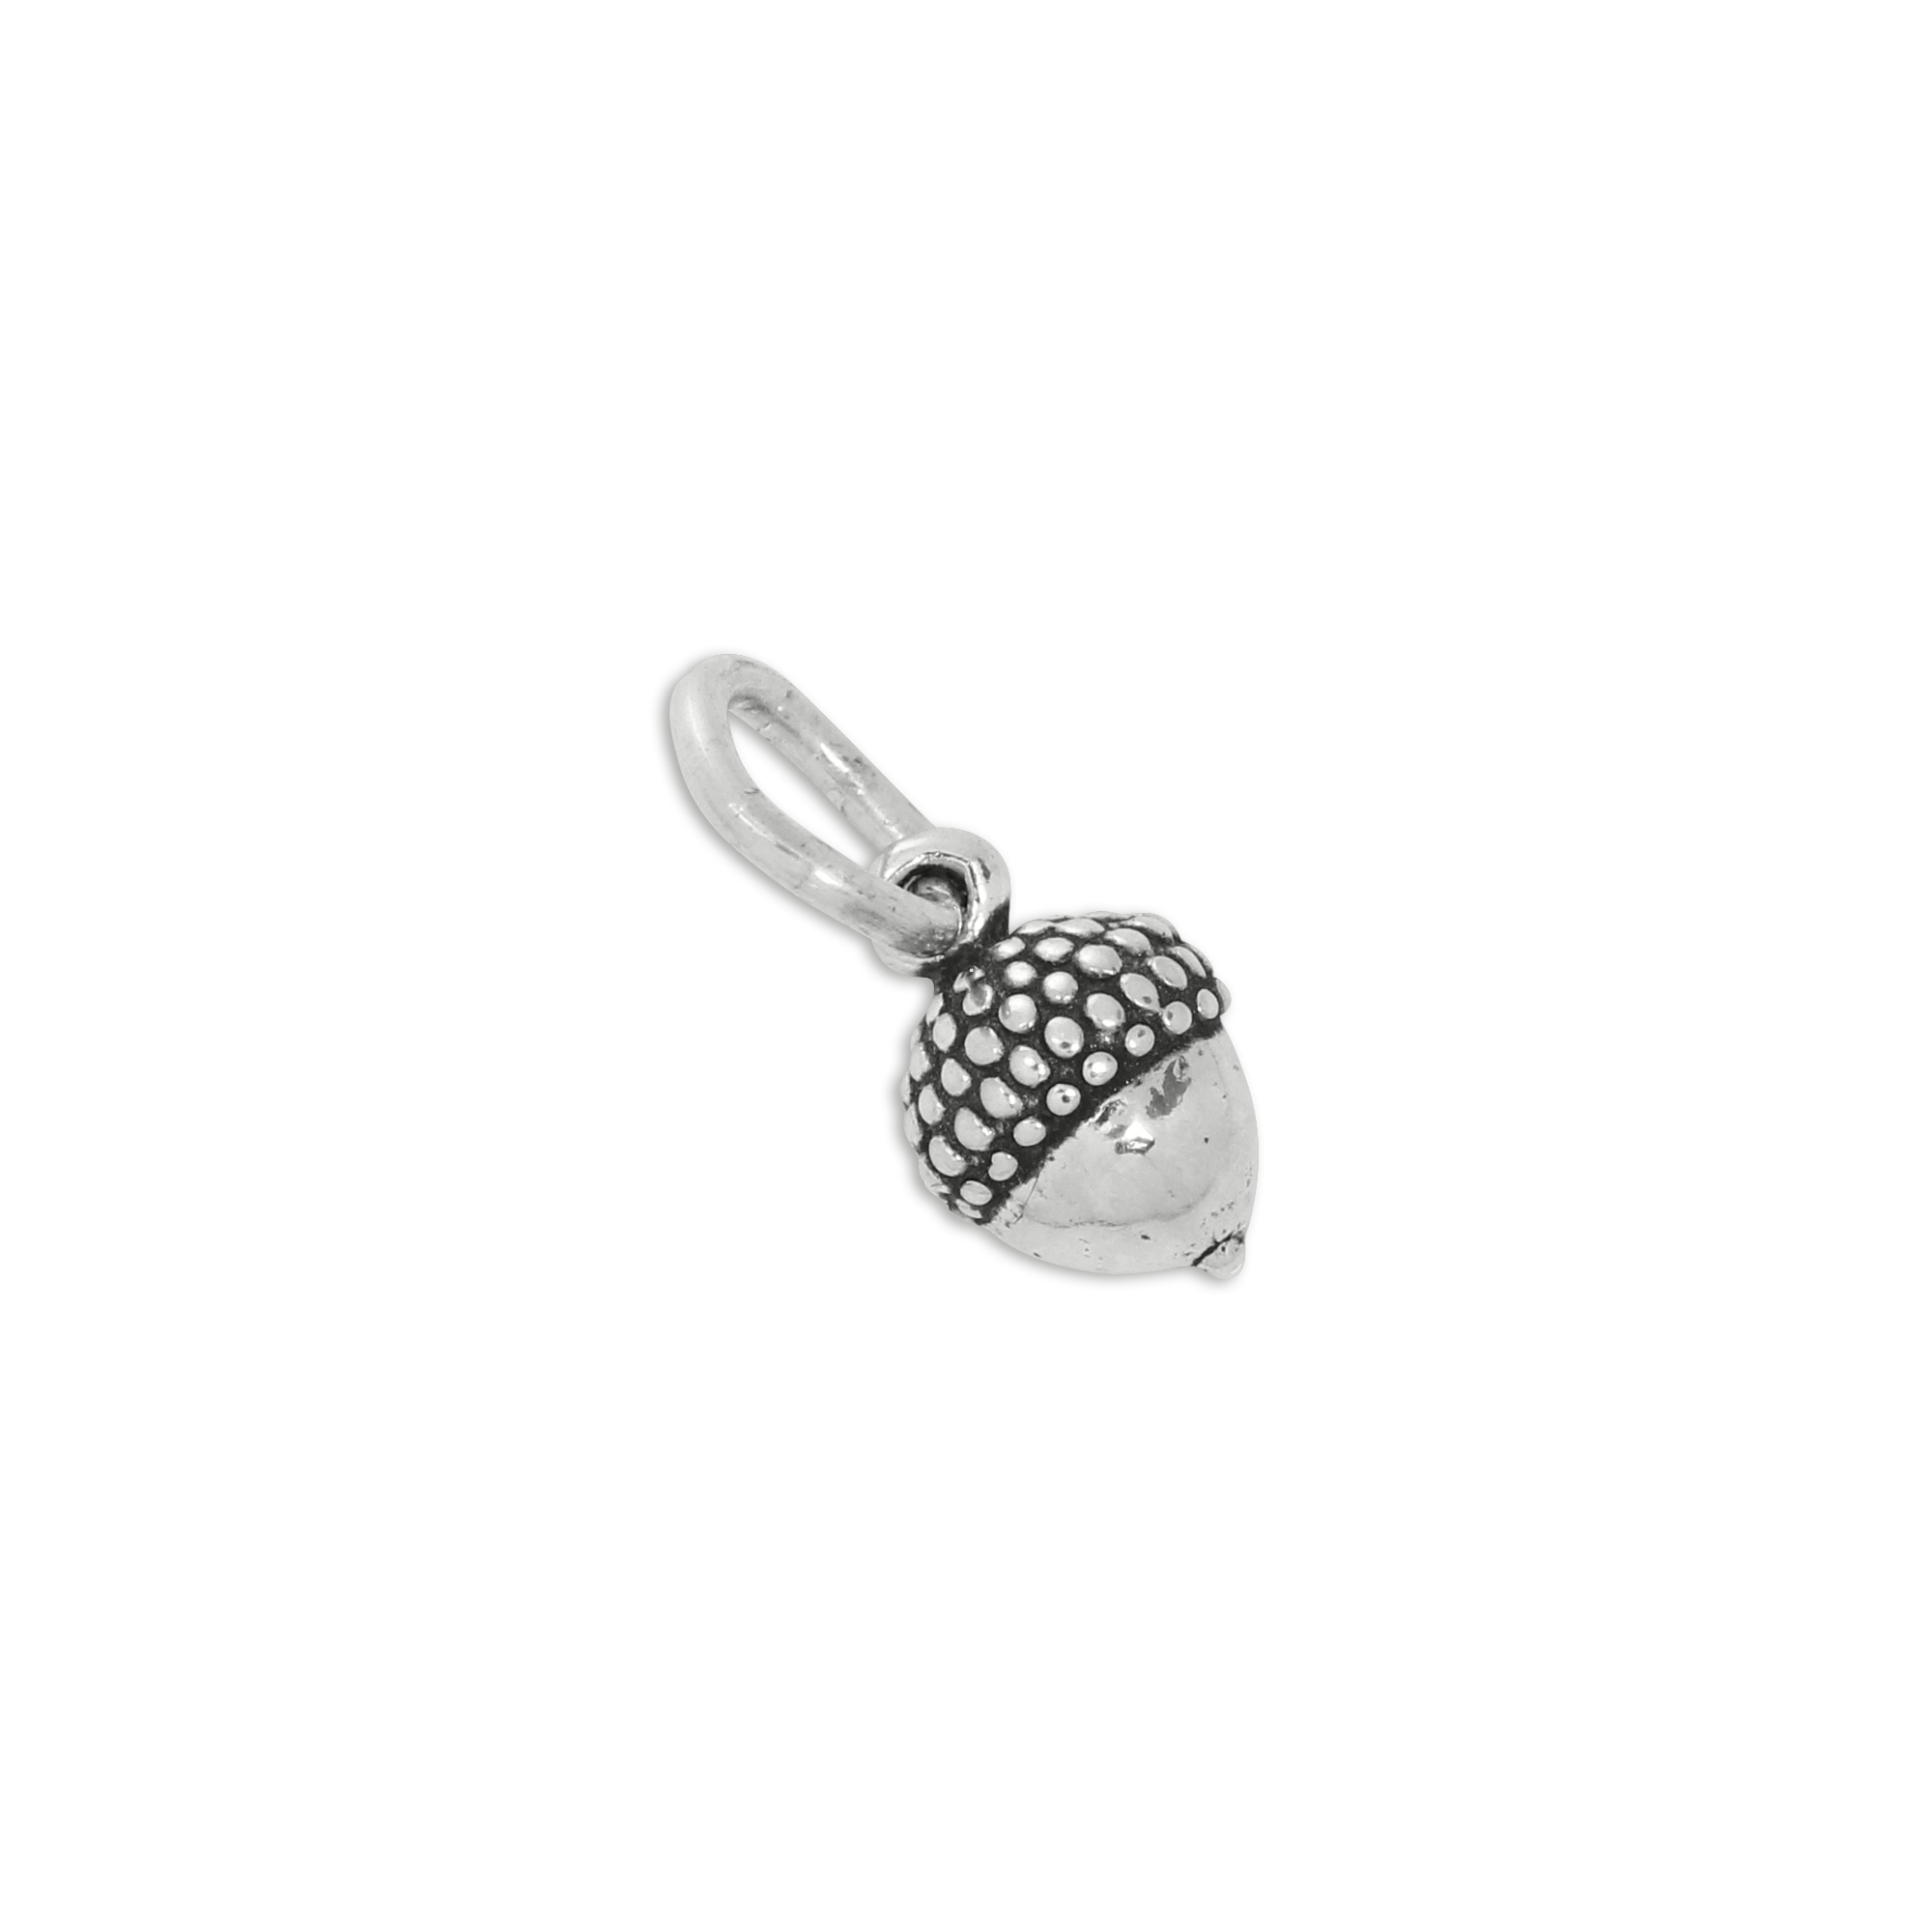 An image of Sterling Silver Half Small Acorn Charm